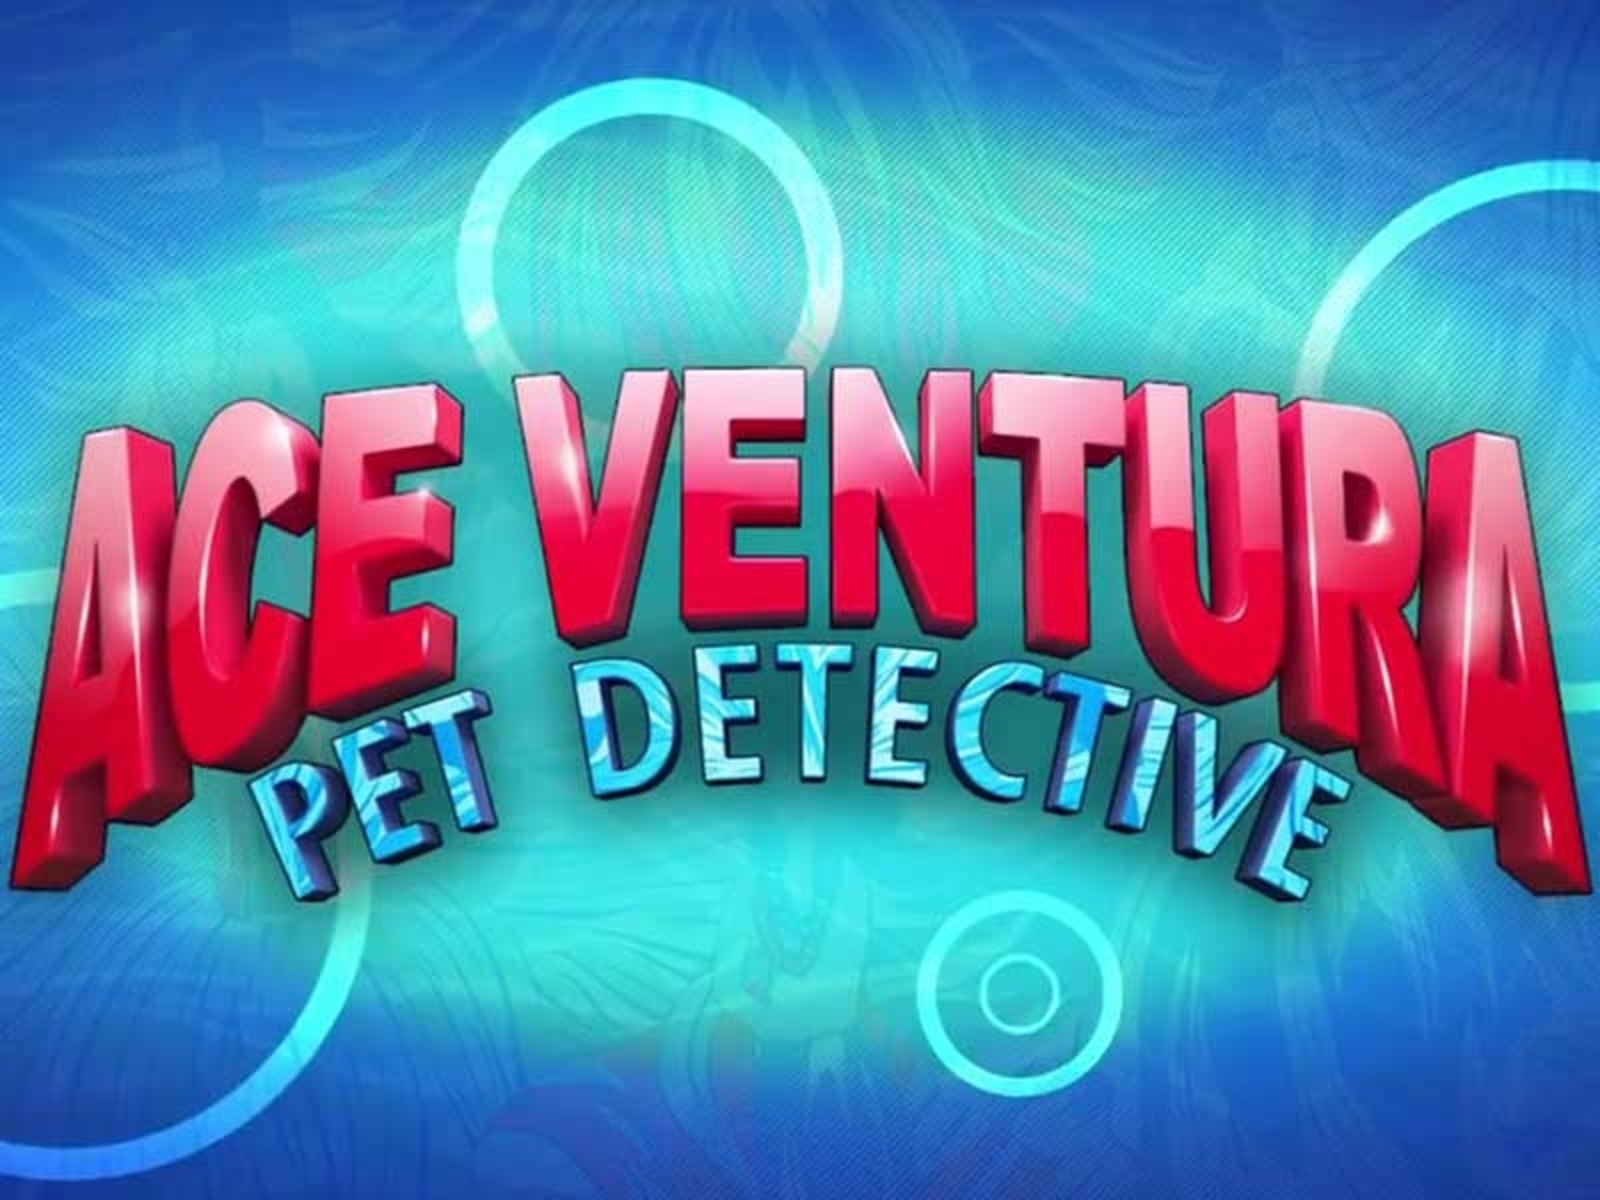 Ace Ventura Online Slot Demo Game by Playtech